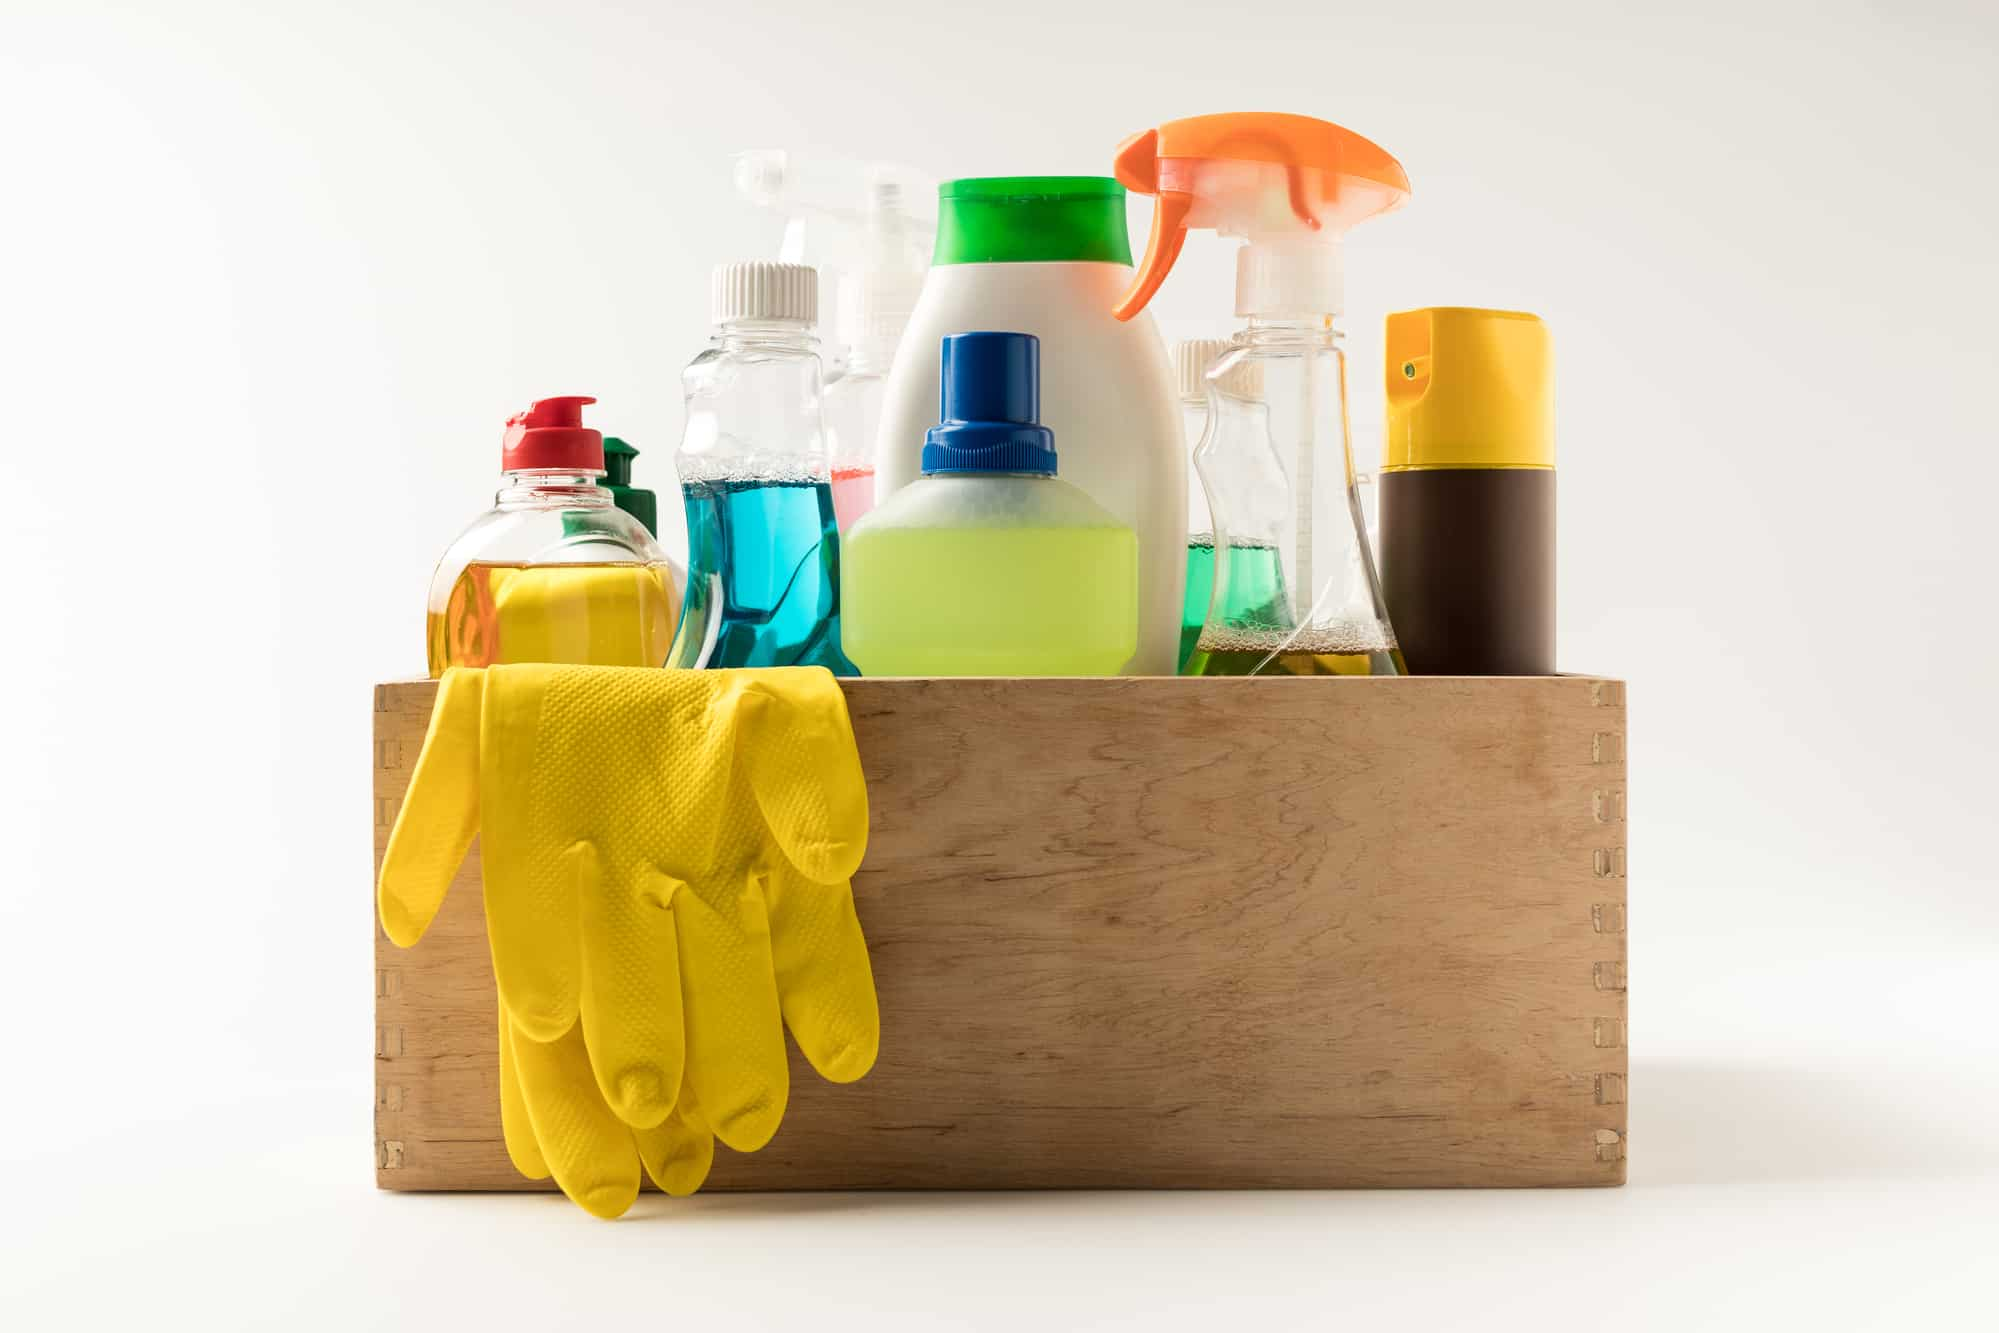 non-toxic cleaning products in a wooden box